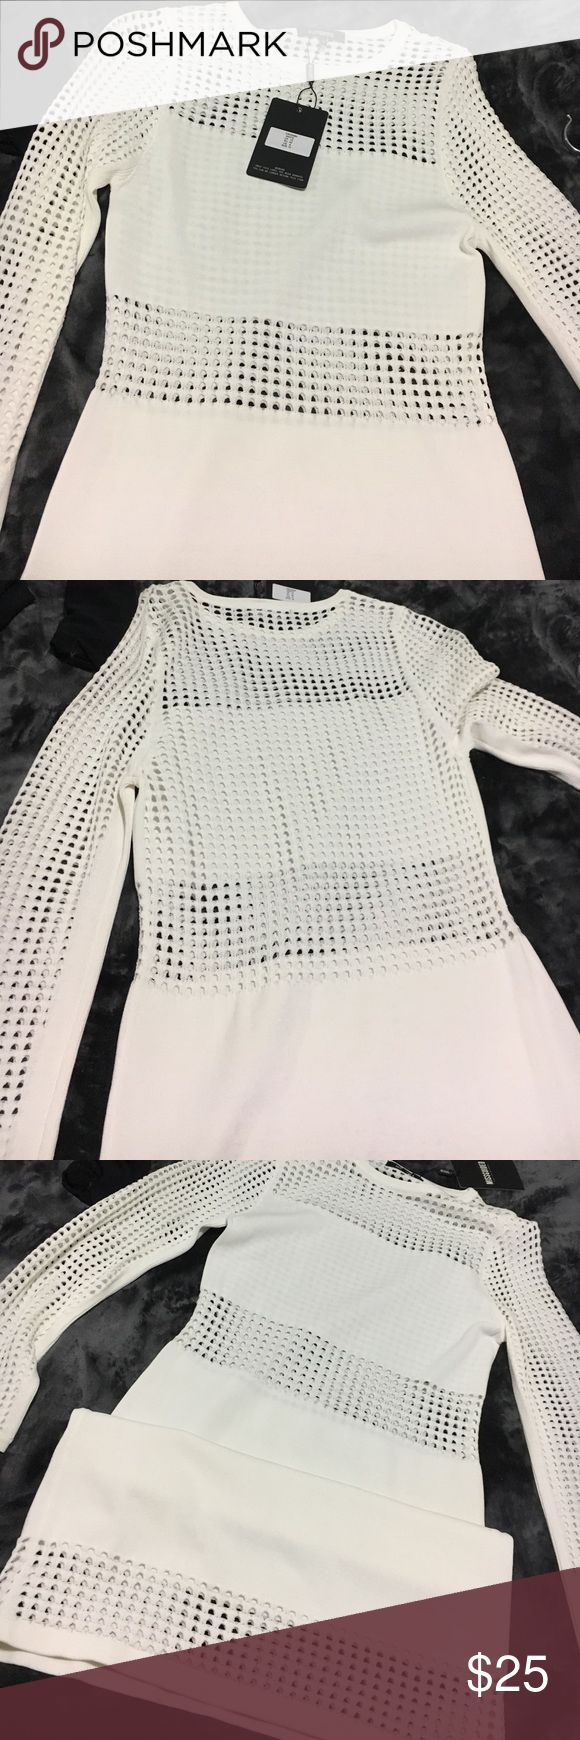 Missguided white dress Misguided white dress with cut out bands around the legs, waist, and the back. New with tags Missguided Dresses Mini